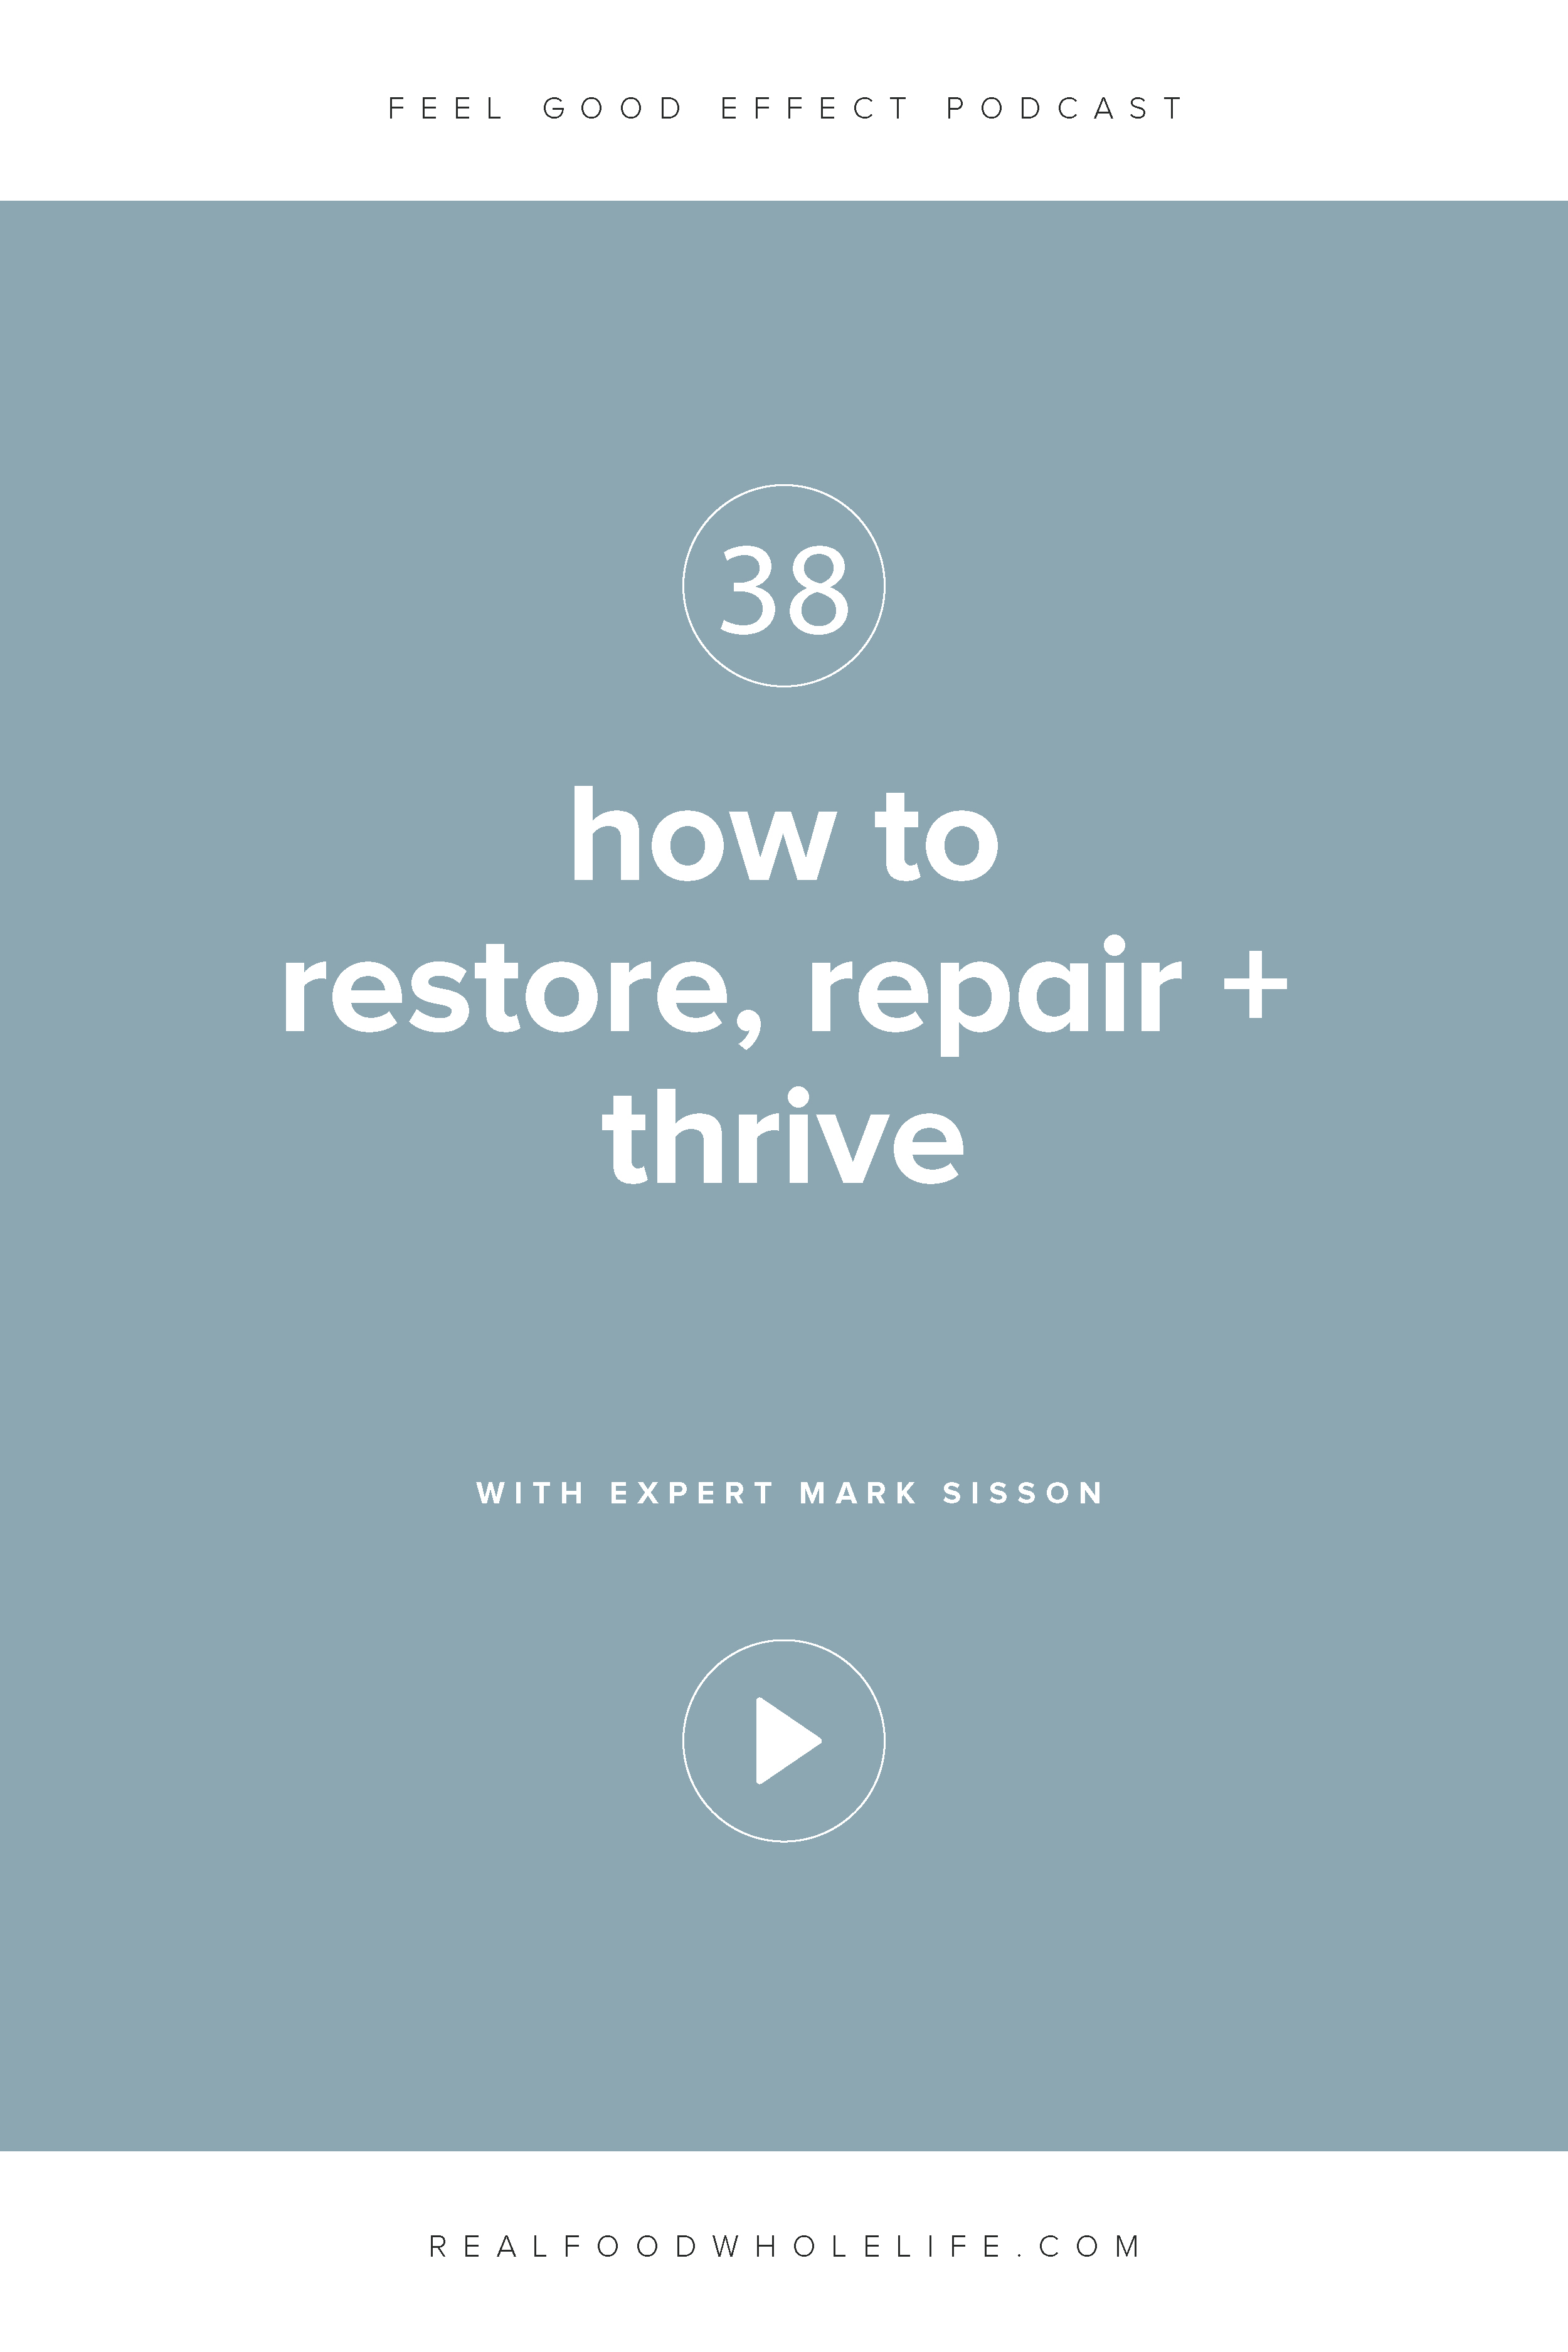 How to Restore, Repair + Thrive with Mark Sisson Feel Good Effect Podcast